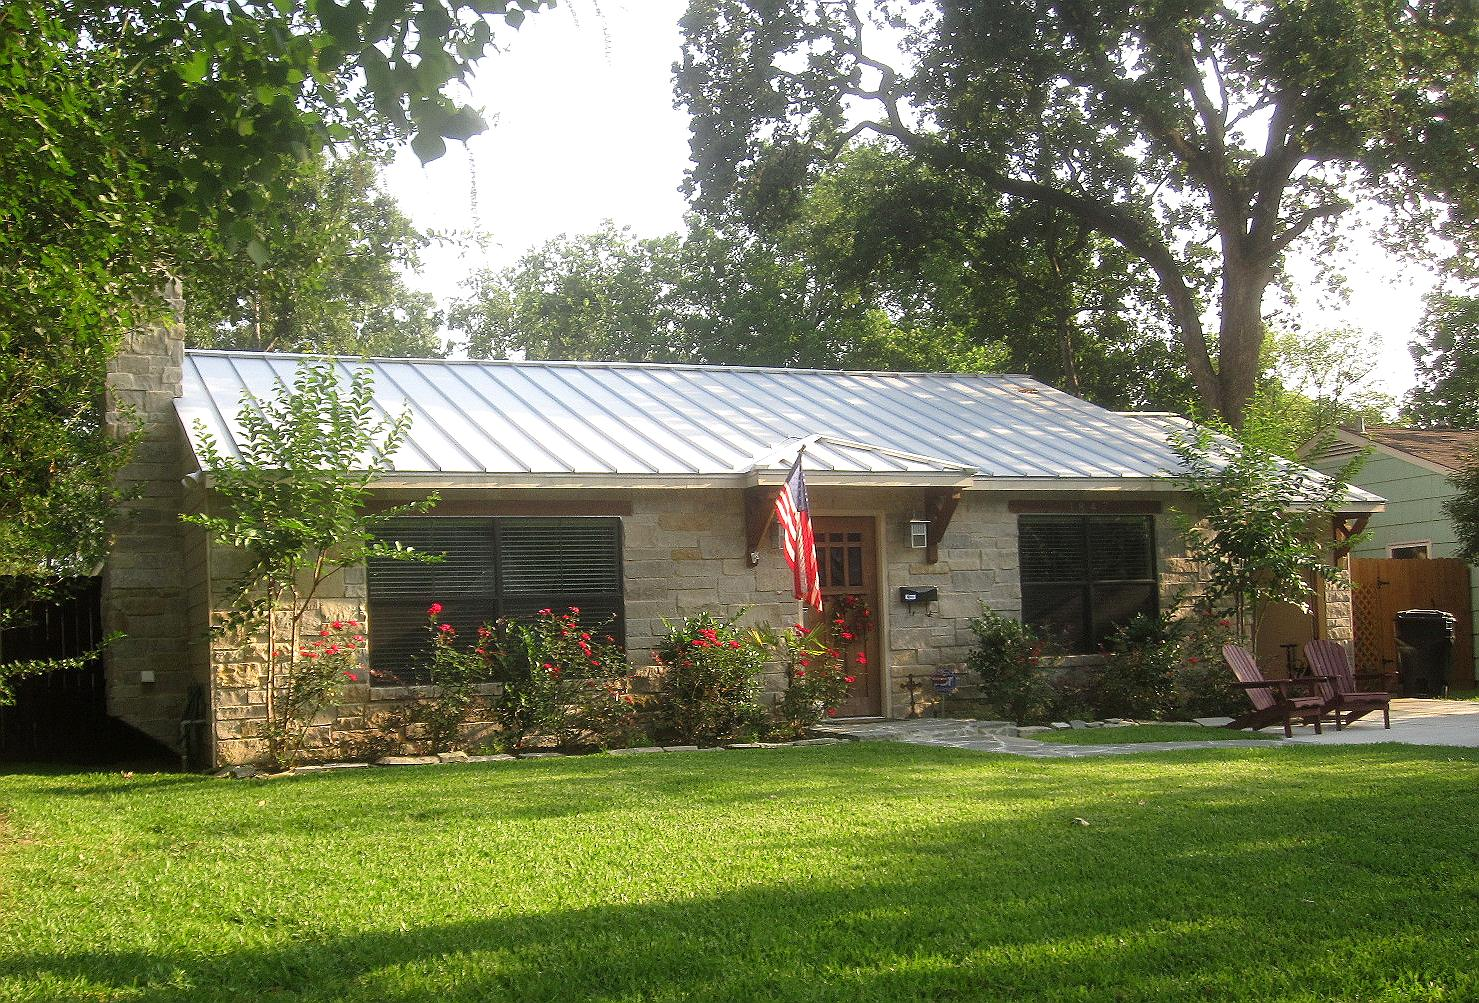 Hardy Board Siding >> The OtHeR HoUsToN: TYPES OF BUNGALOWS